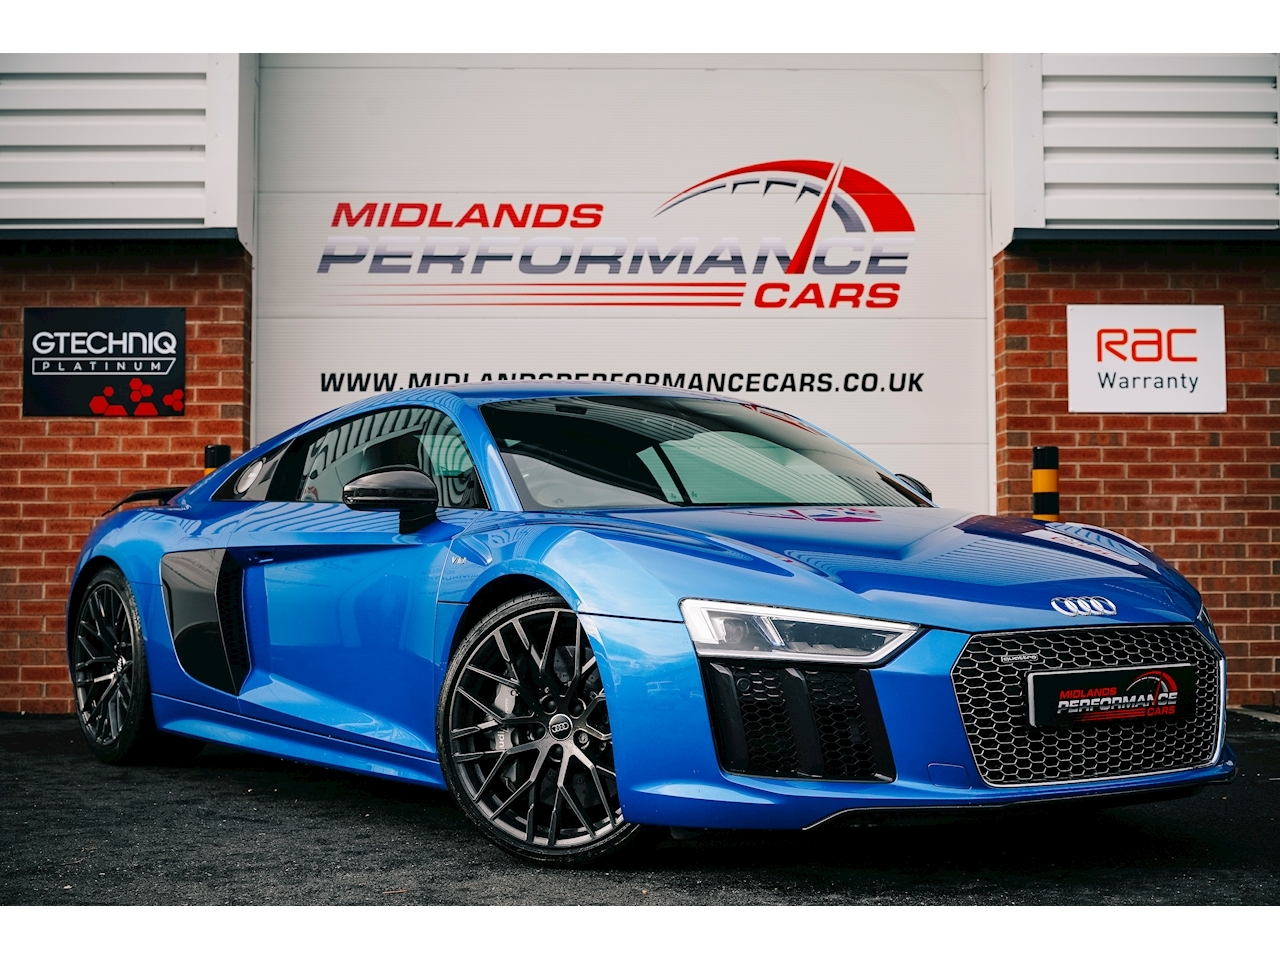 Audi R8 FSI V10 Plus Coupe 5.2 Automatic Petrol